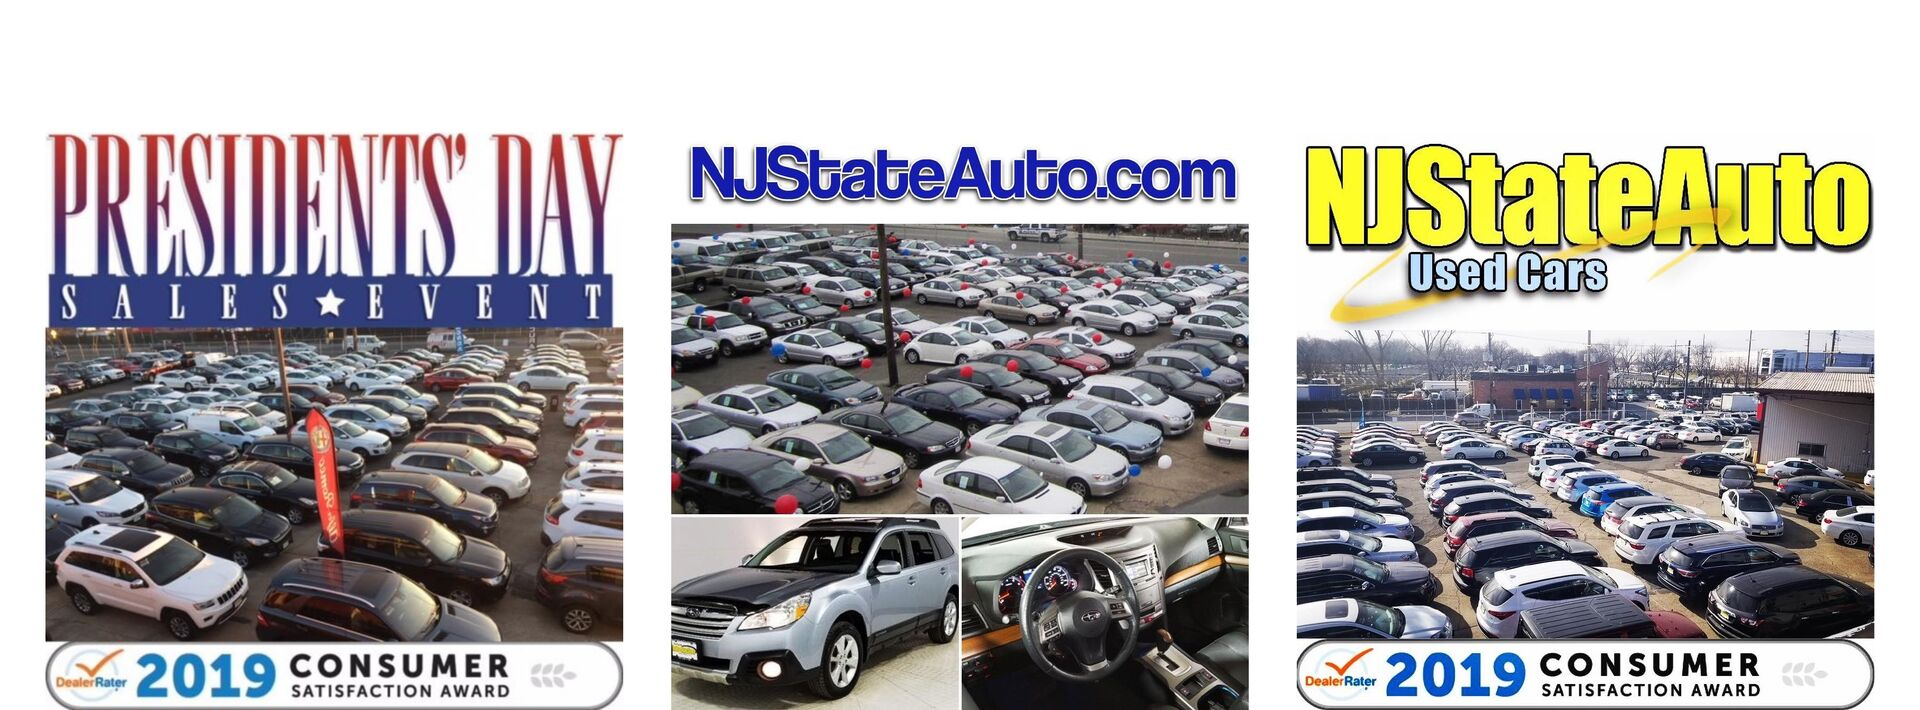 2019 President's Day Used Car Sale Goes On